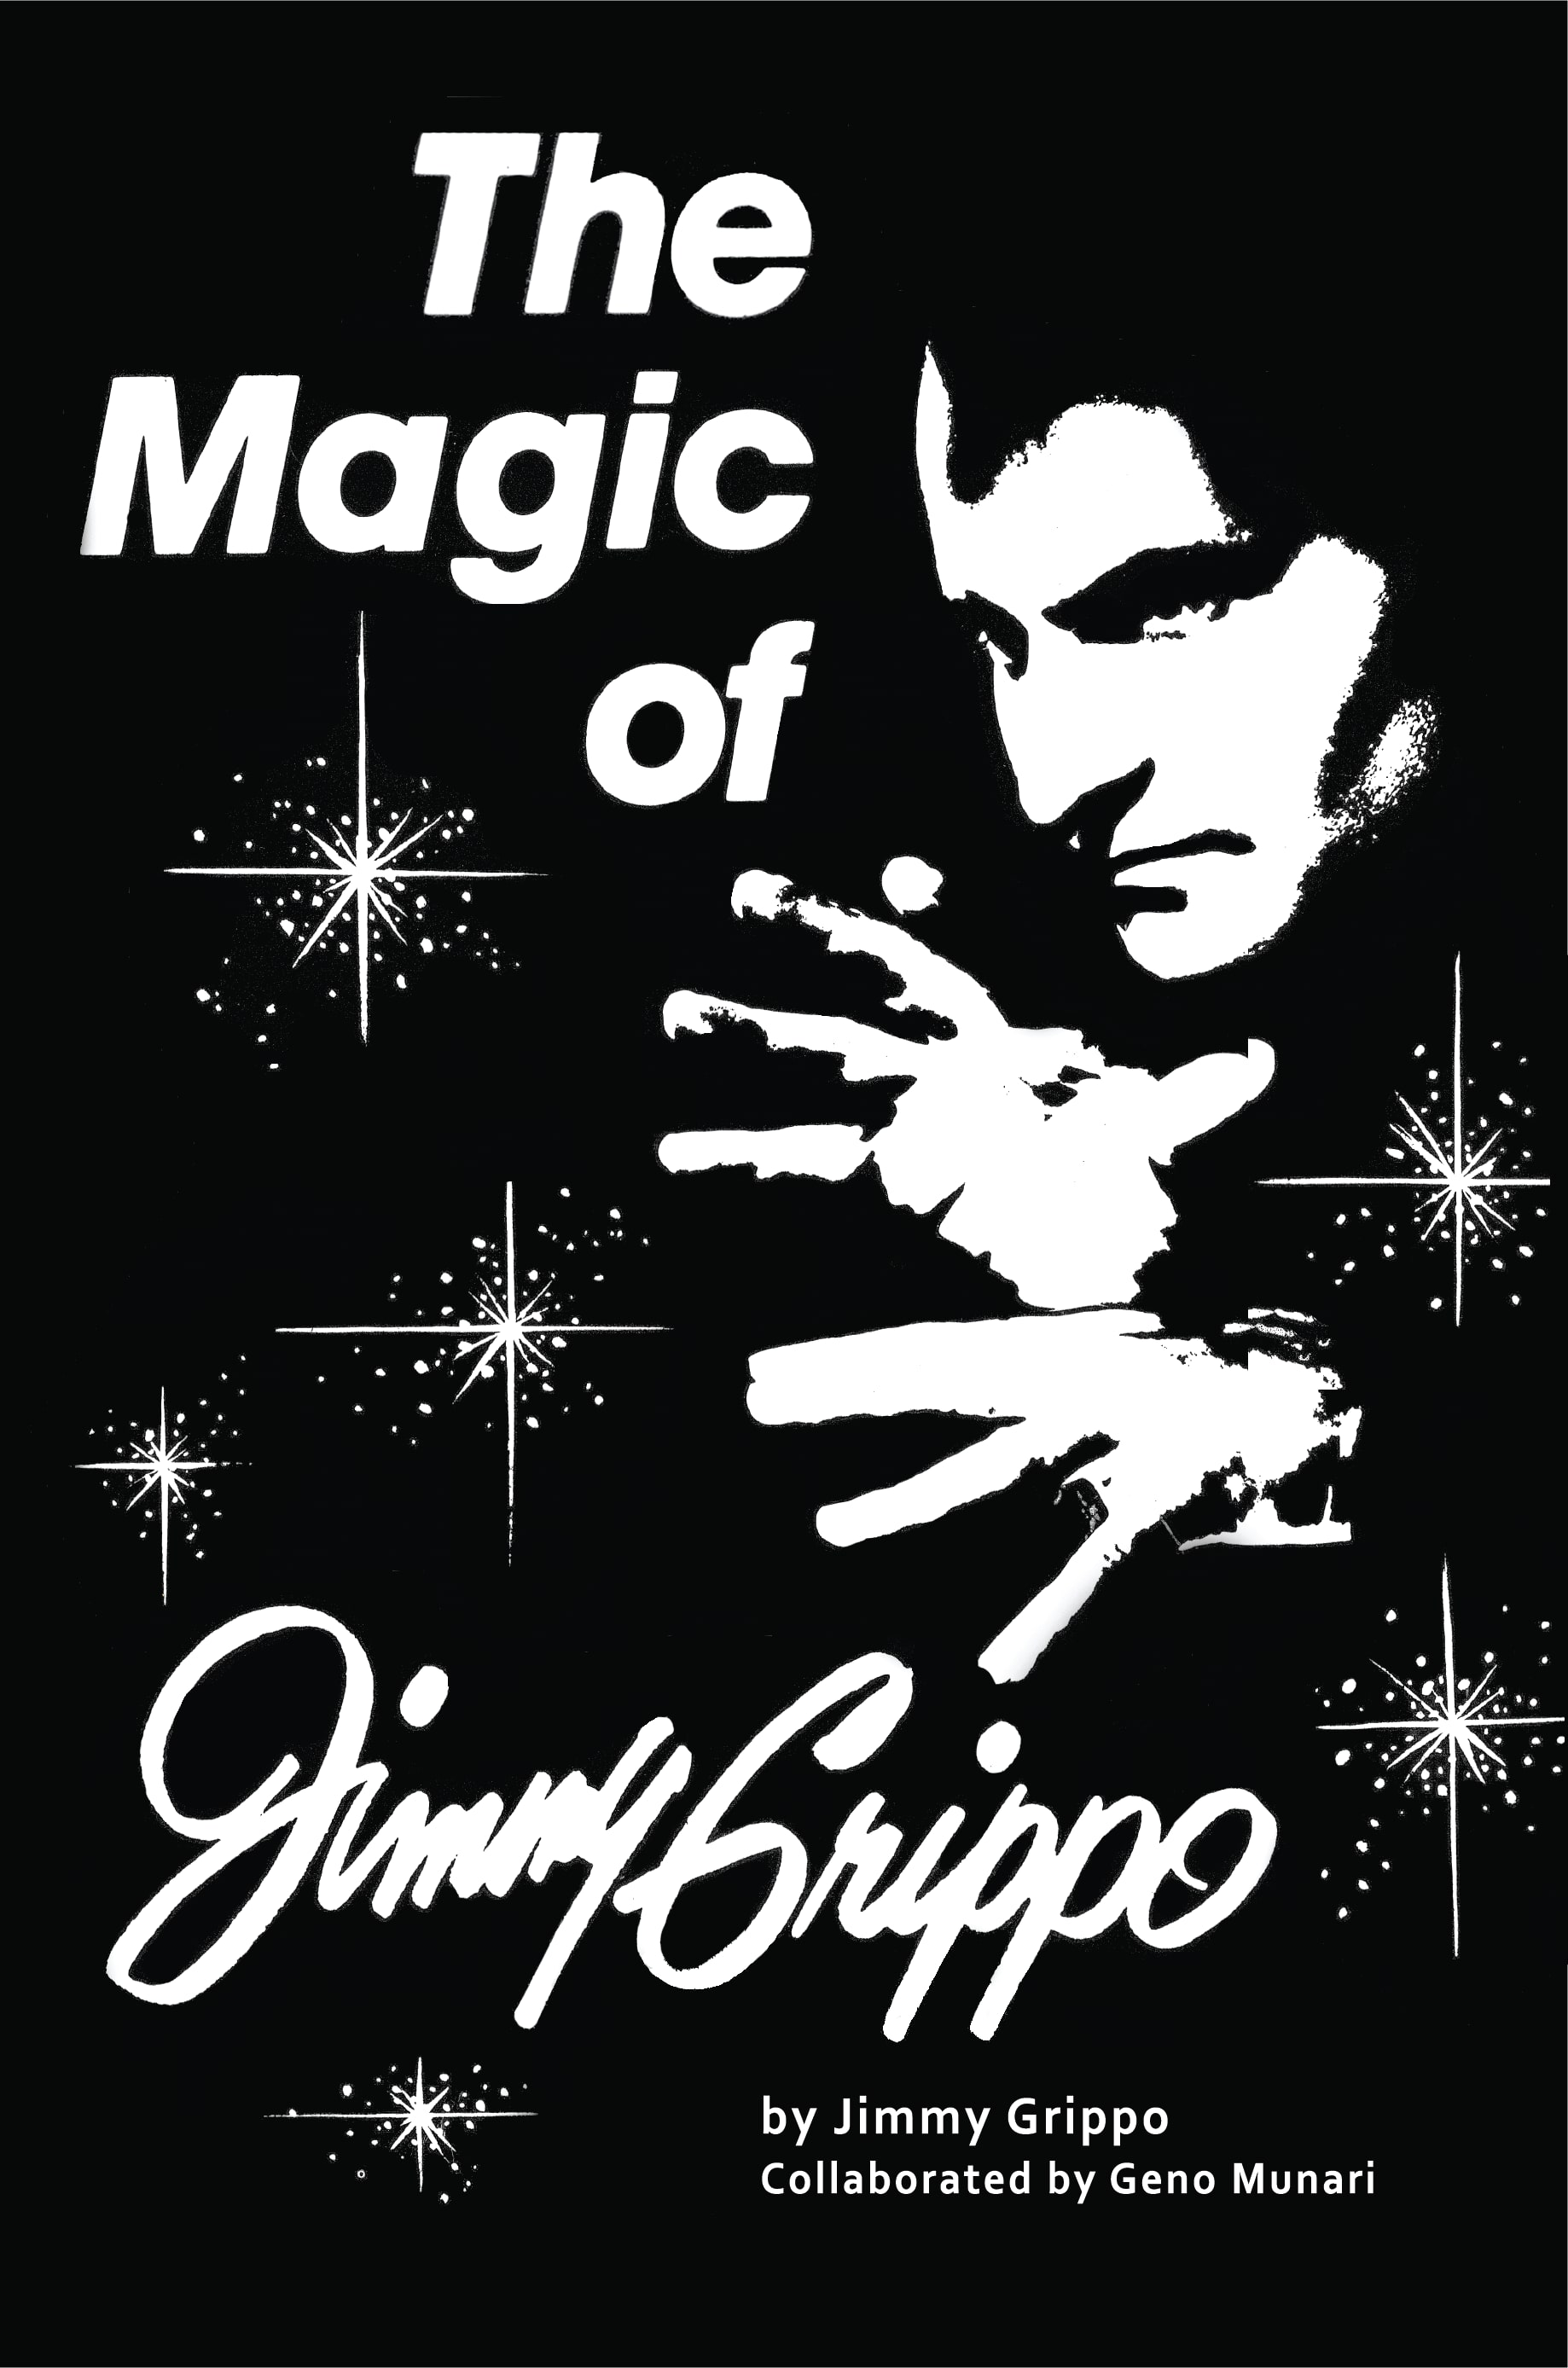 Book-The Magic of Jimmy Grippo